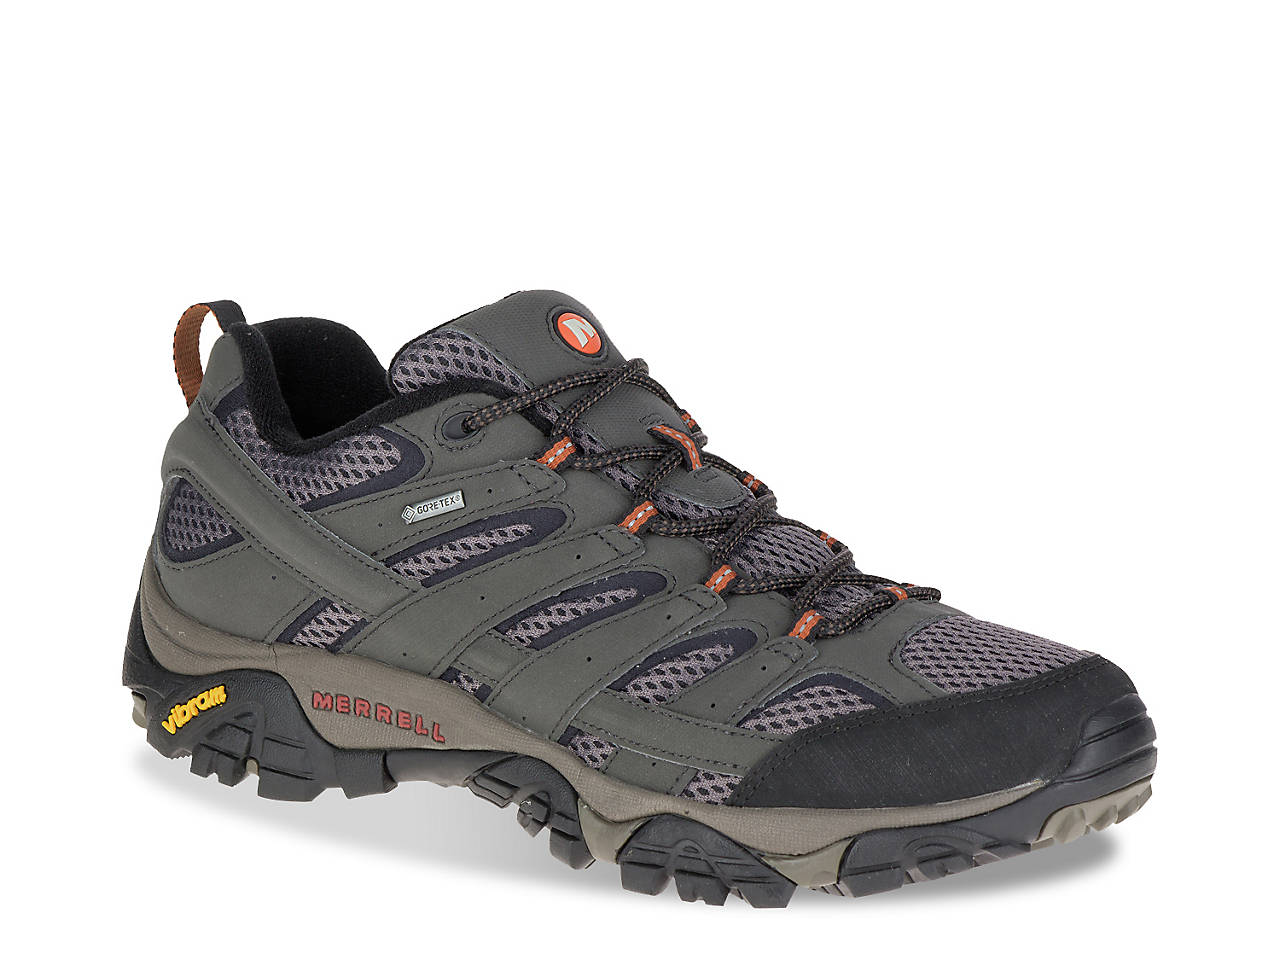 new selection best selection of 2019 unequal in performance MOAB 2 Gore-Tex Trail Shoe